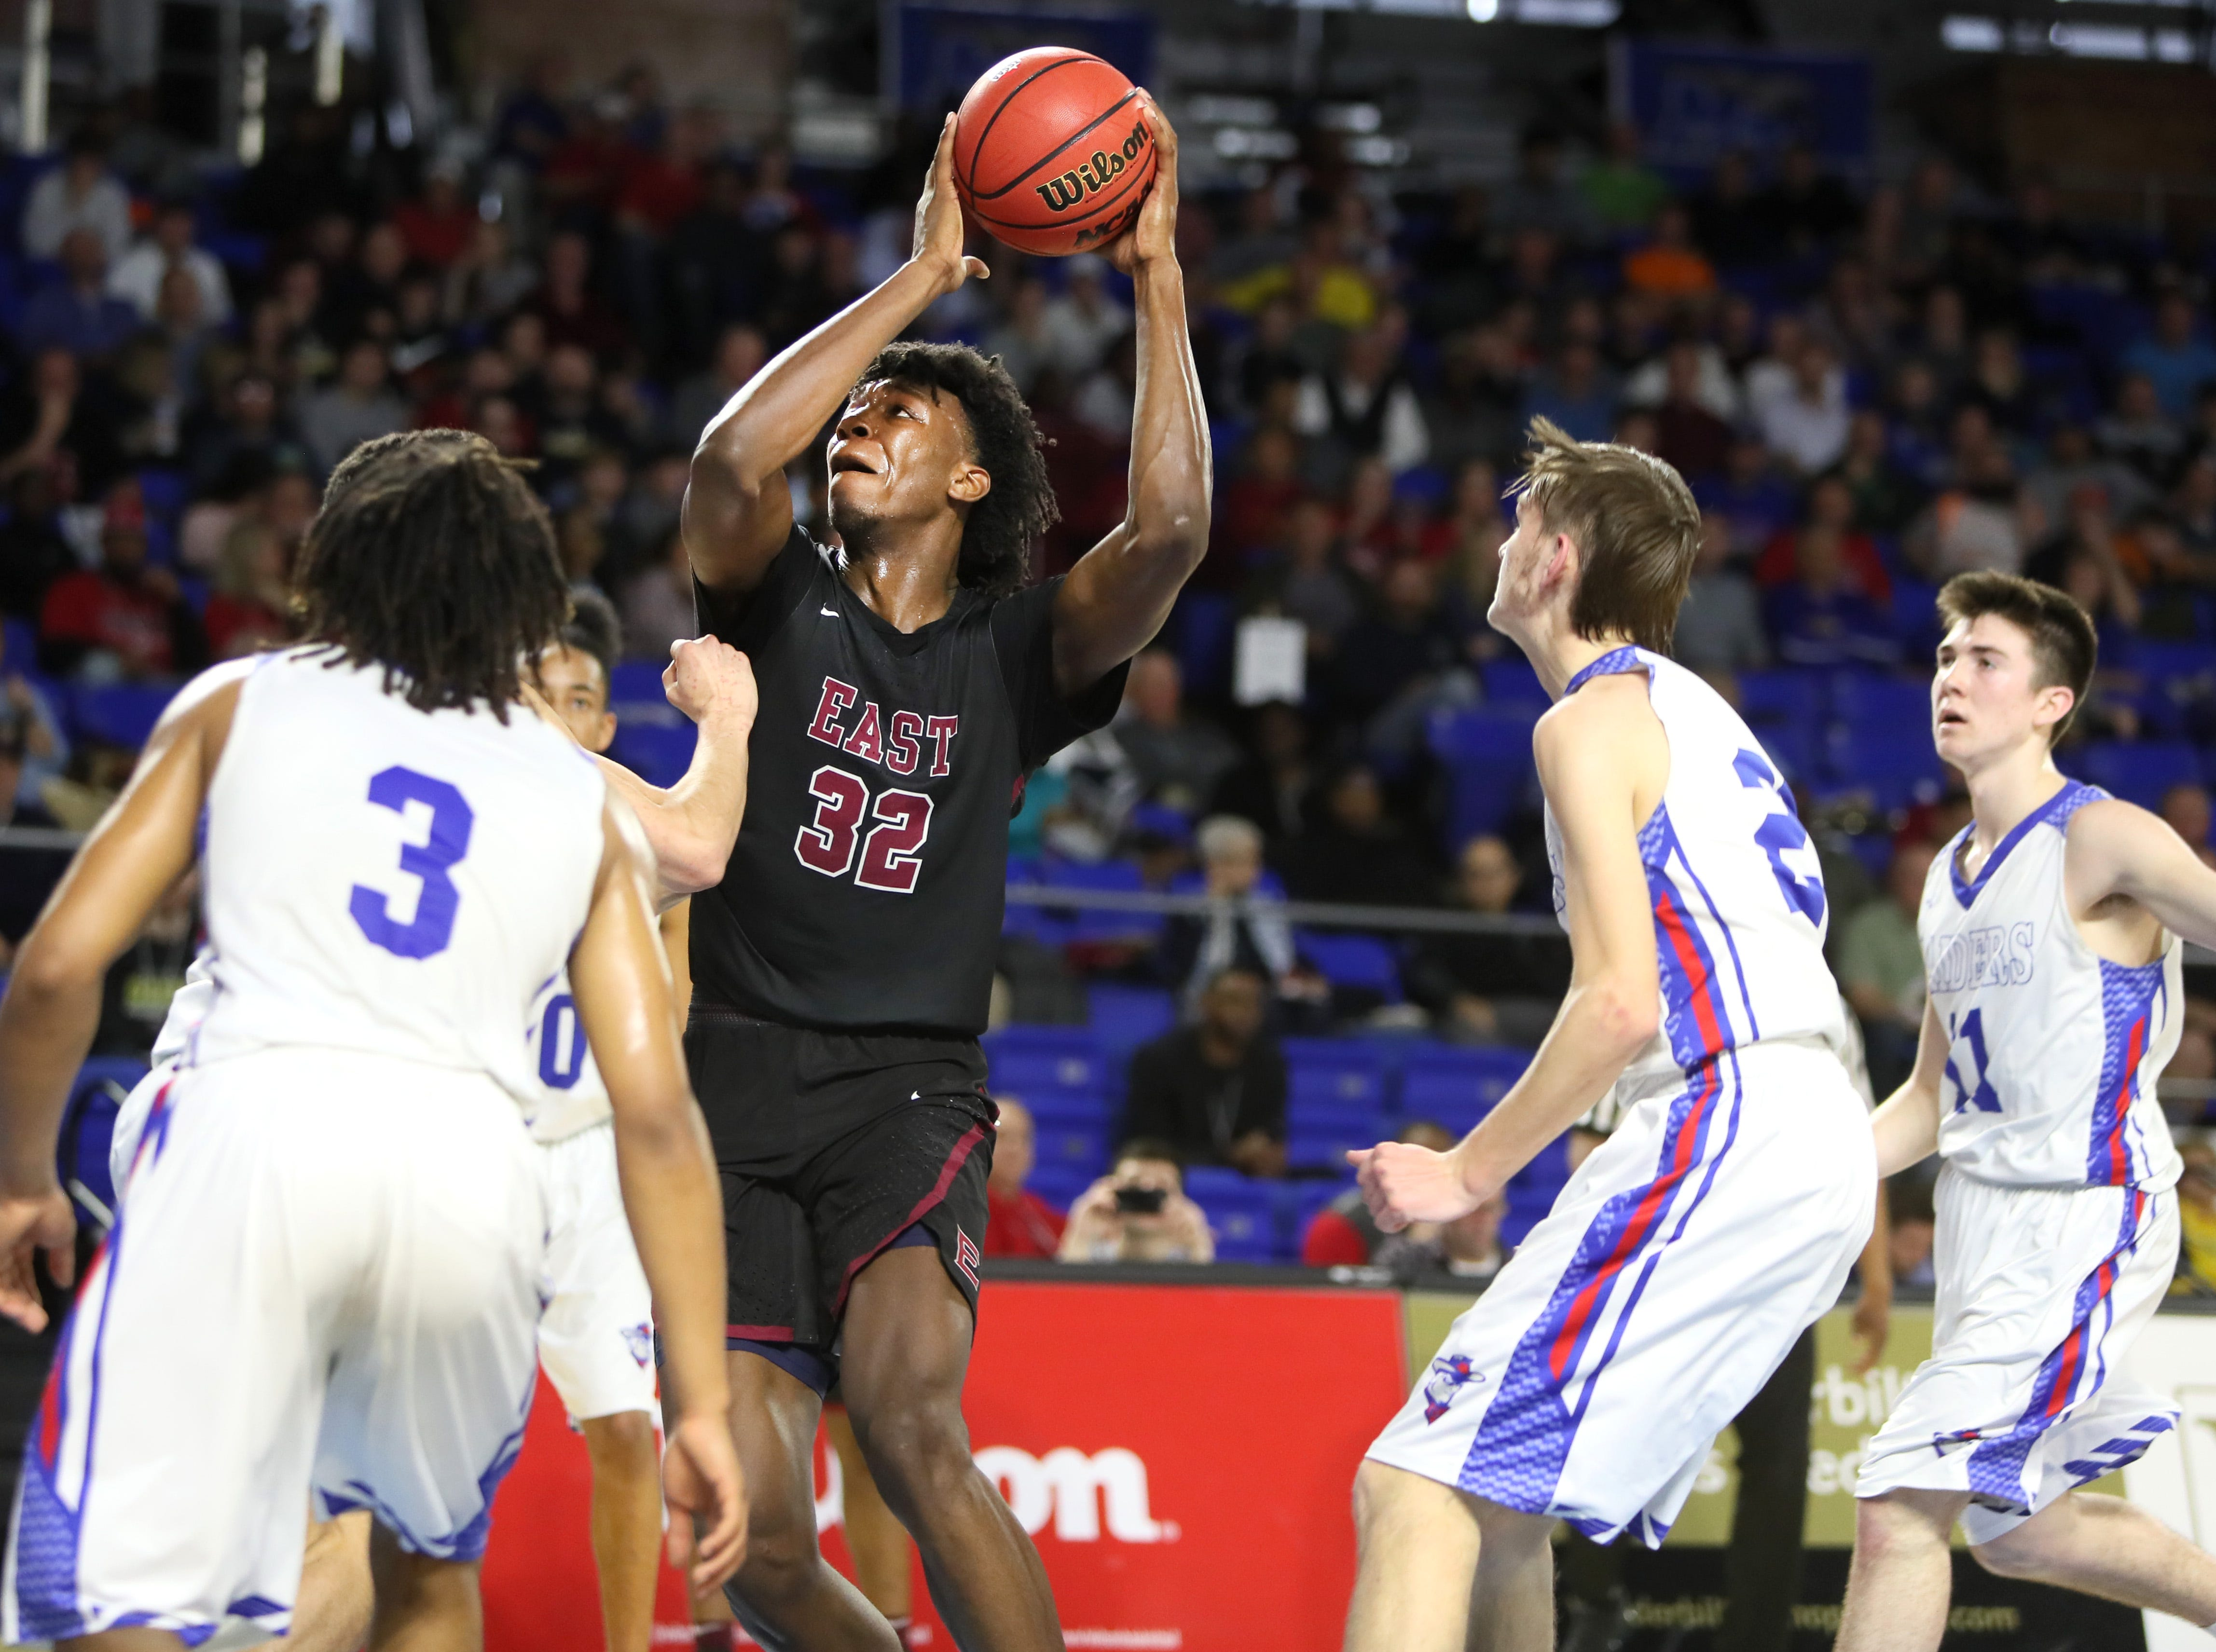 Memphis East's James Wiseman shoots the ball against Cleveland during the TSSAA Division I basketball state tournament at the Murphy Center in Murfreesboro, Tenn. on Thursday, March 14, 2019.